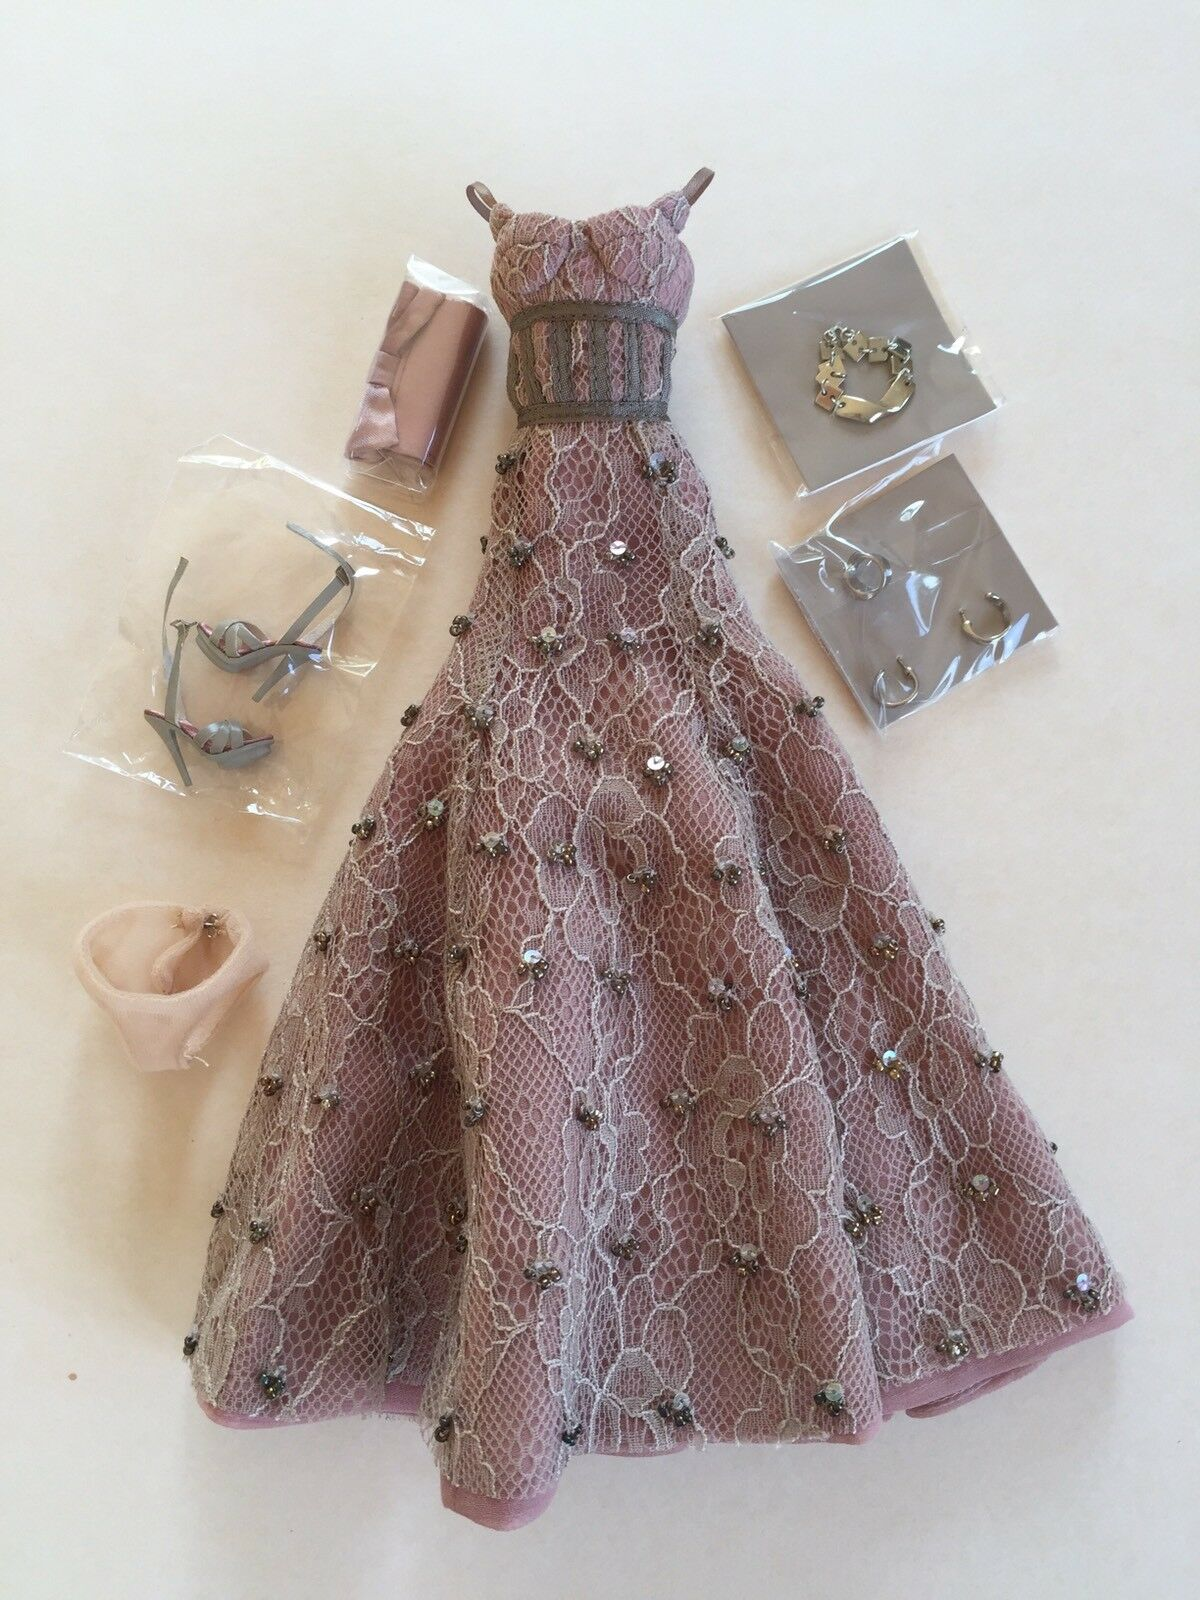 Outfit complet Agnes Love, Life and Lace Fashion Royalty FR2 Integrity Toys doll